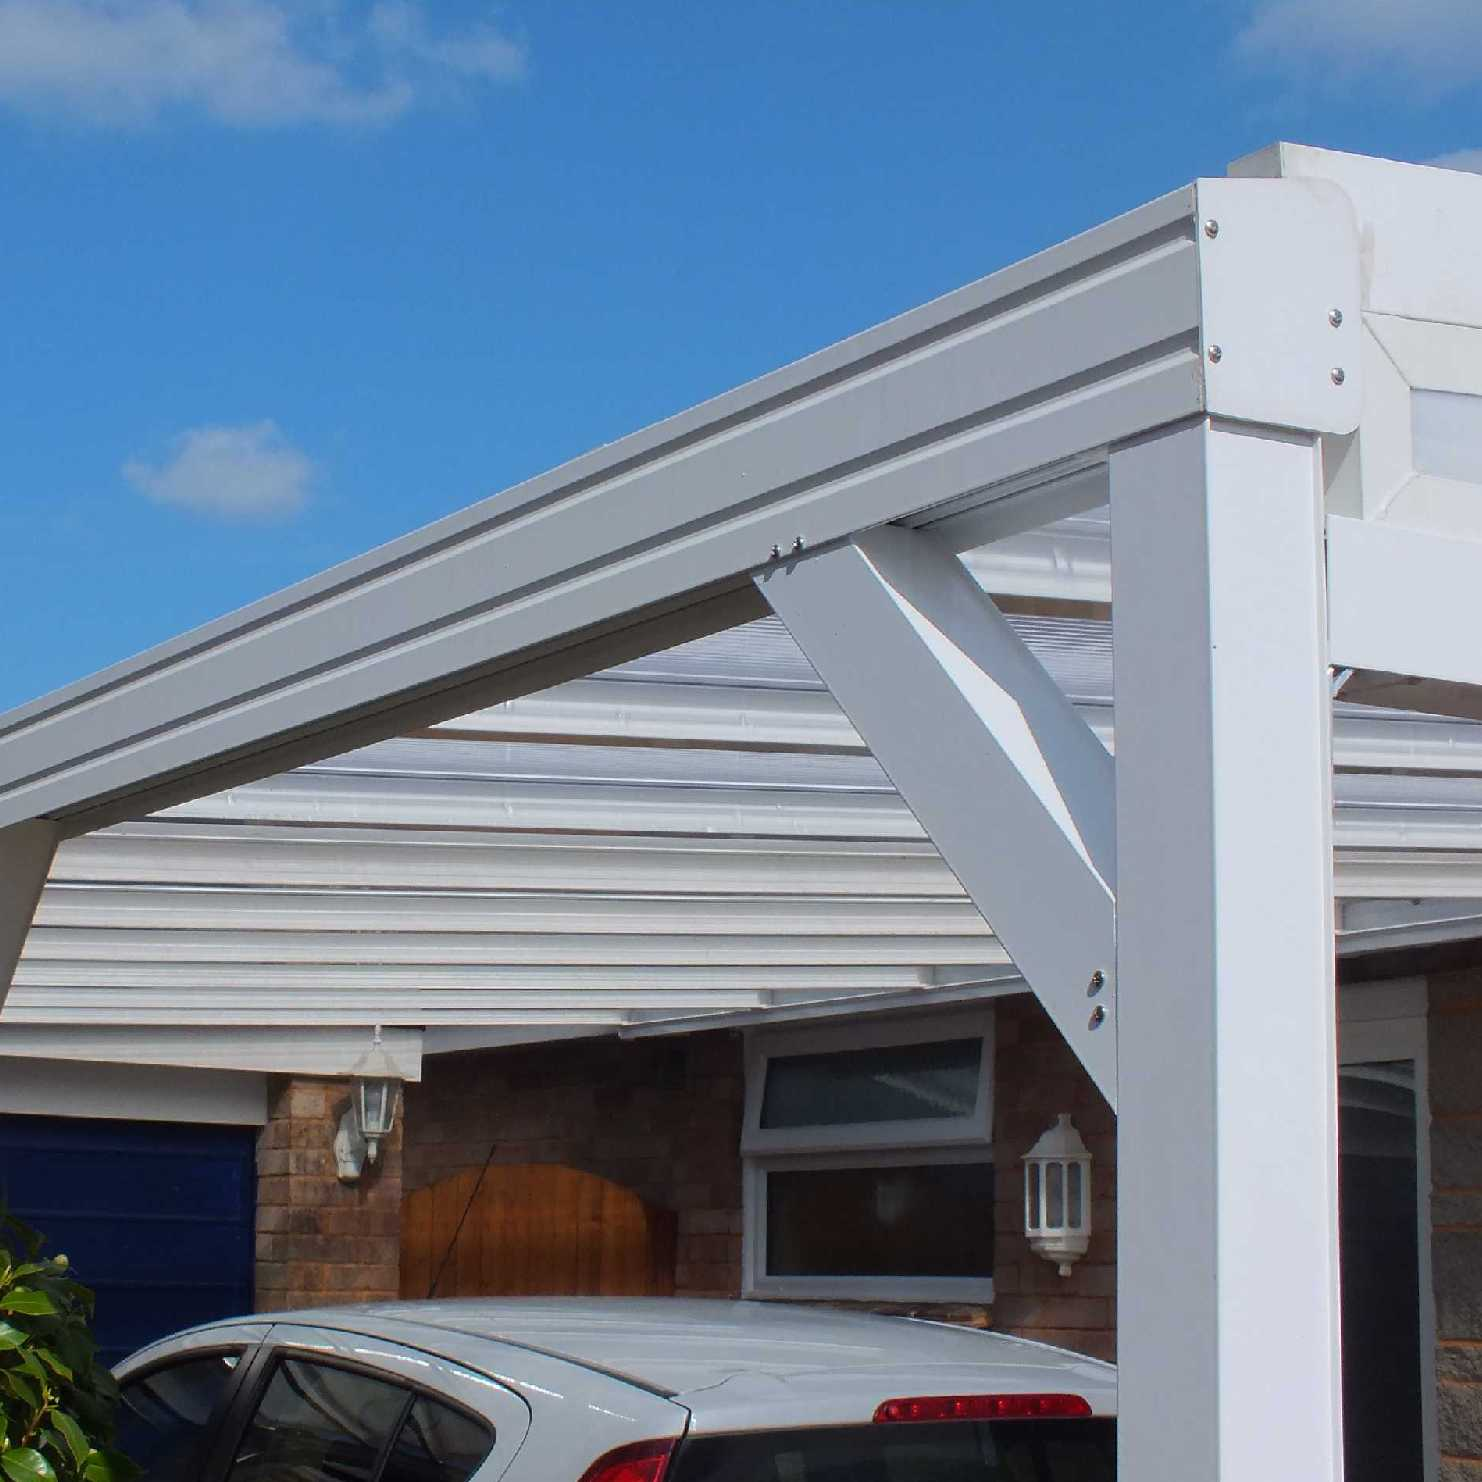 Buy Omega Smart White Lean-To Canopy with 16mm Polycarbonate Glazing - 11.6m (W) x 2.5m (P), (5) Supporting Posts online today